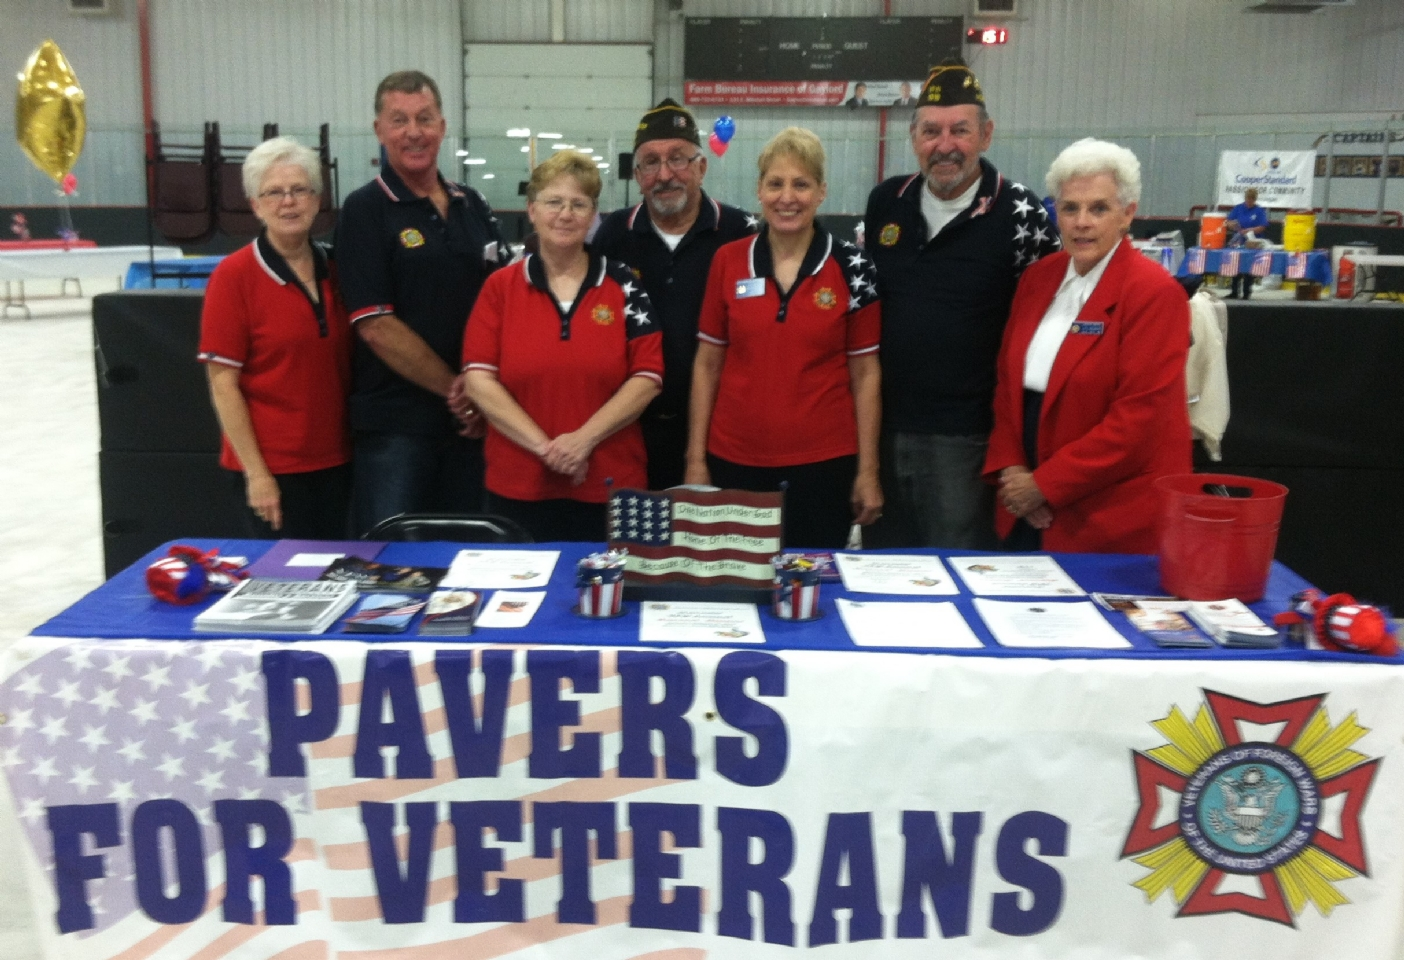 VFW and Auxiliary members distribute paver applications during this event.